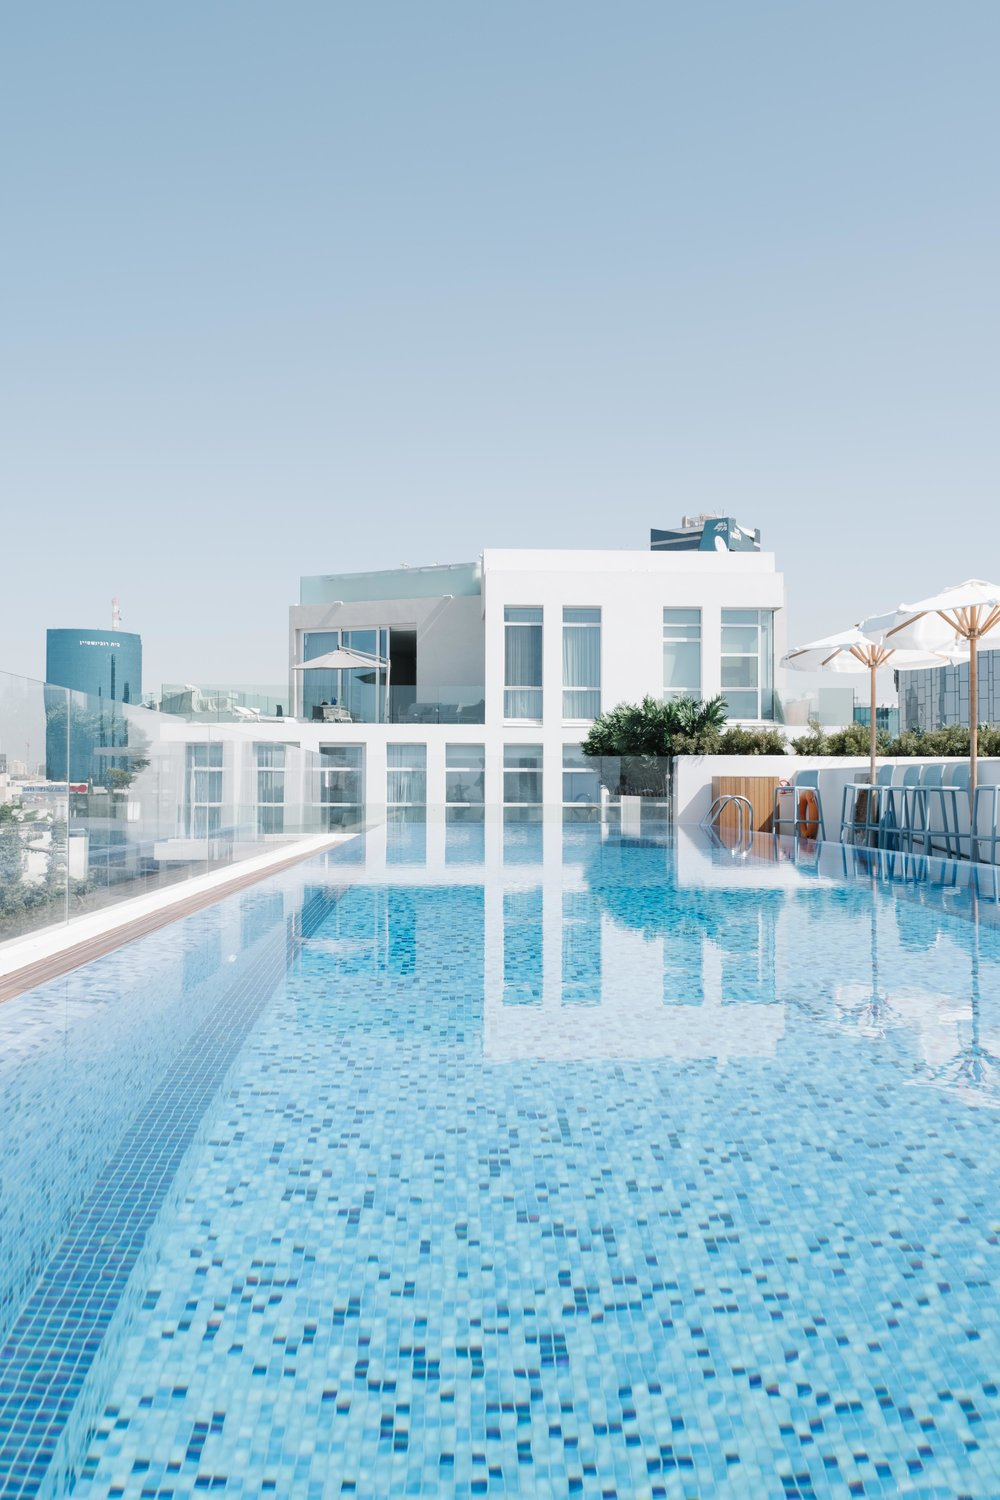 THE NORMAN HOTEL TEL AVIV - VIA TOLILA